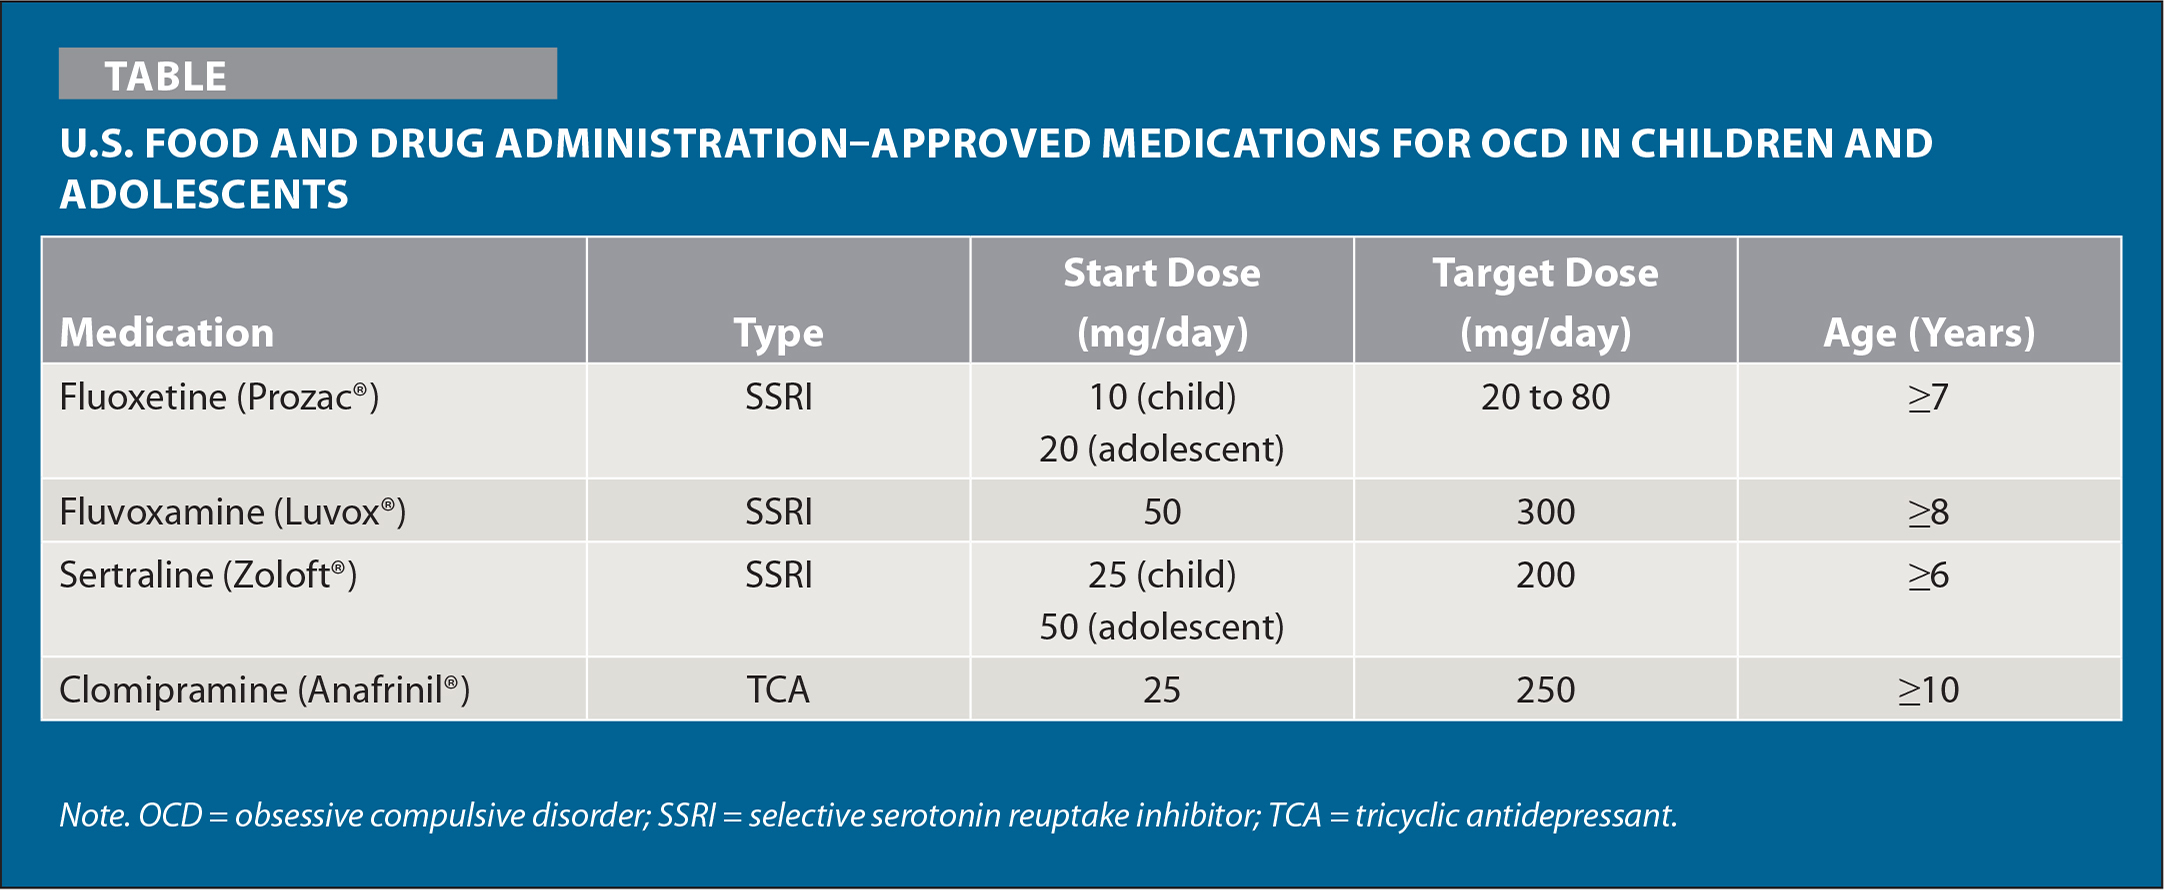 U.S. Food and Drug Administration–Approved Medications for OCD in Children and Adolescents